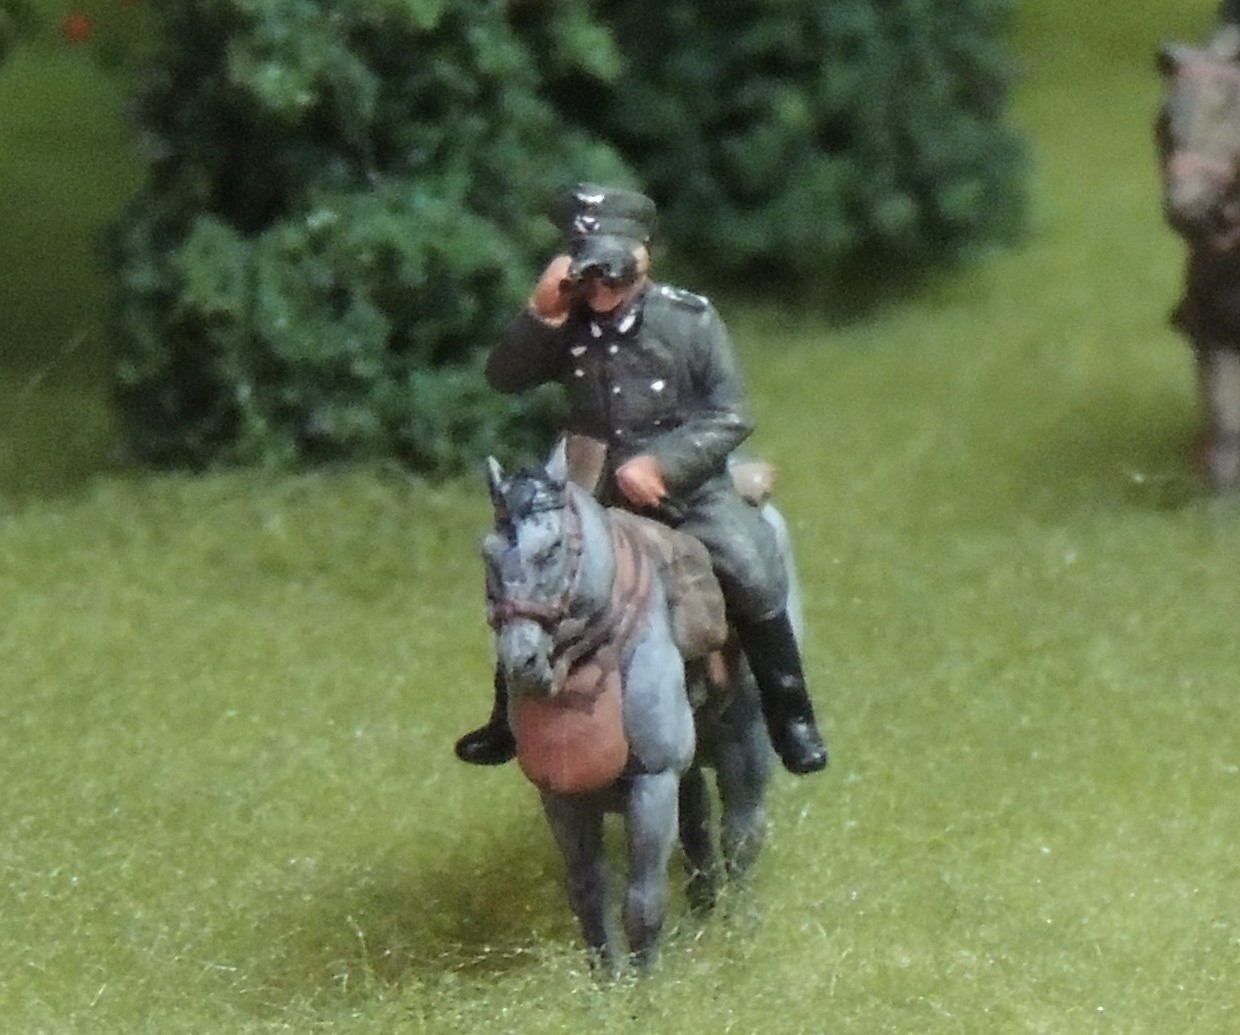 1/72, Animals, Cavalry, German, Horses, Soldiers, Waterloo, Waterloo 025